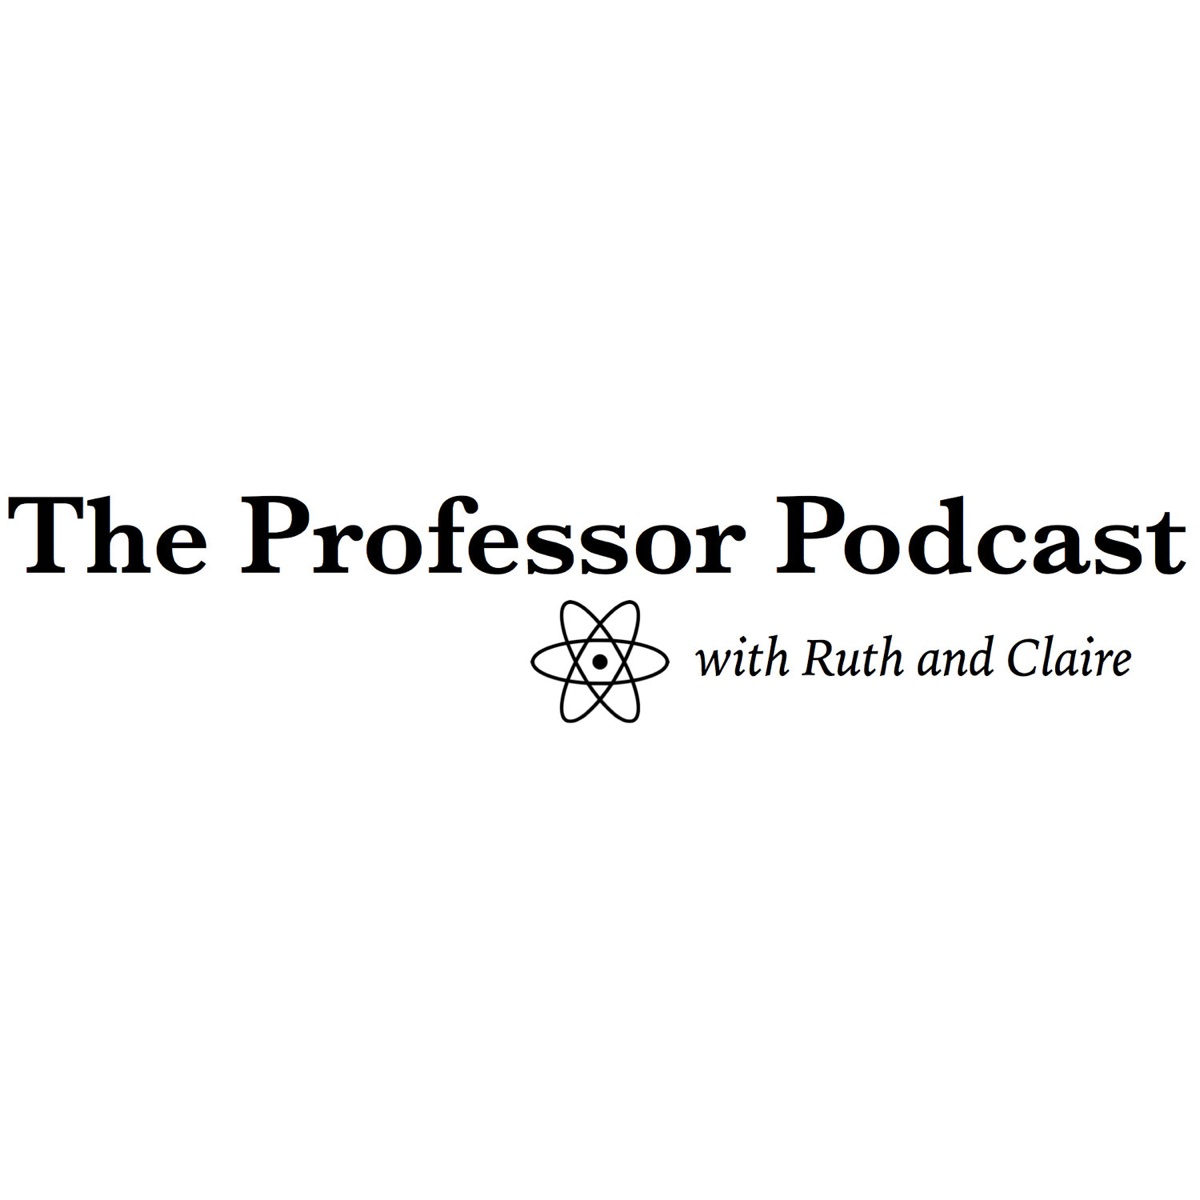 The Professor Podcast with Ruth and Claire